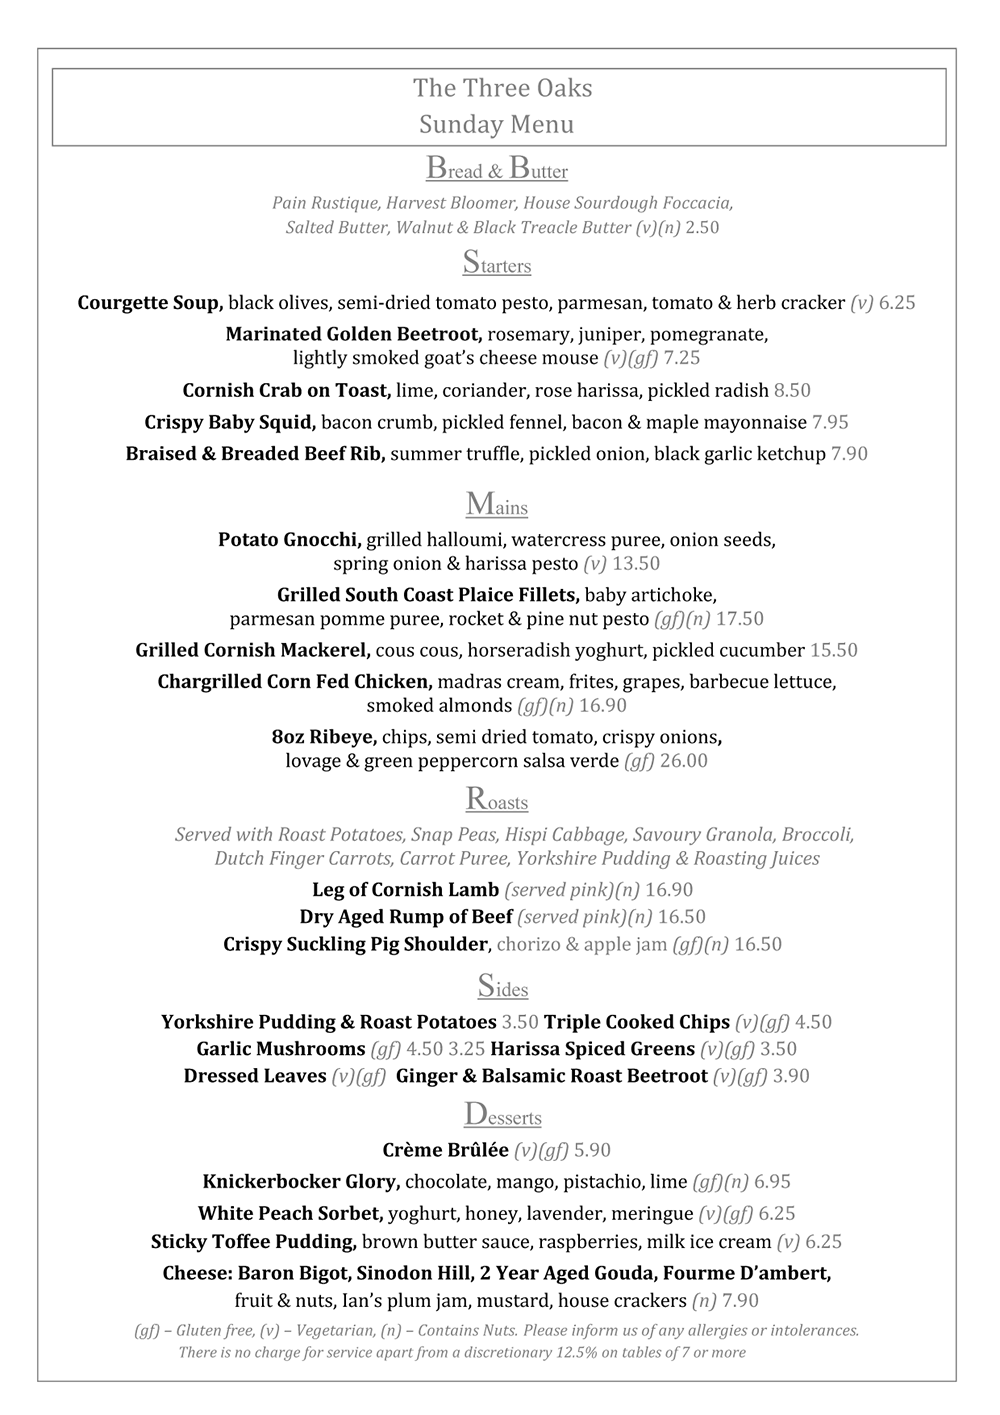 Sept 2017 Sunday Menu